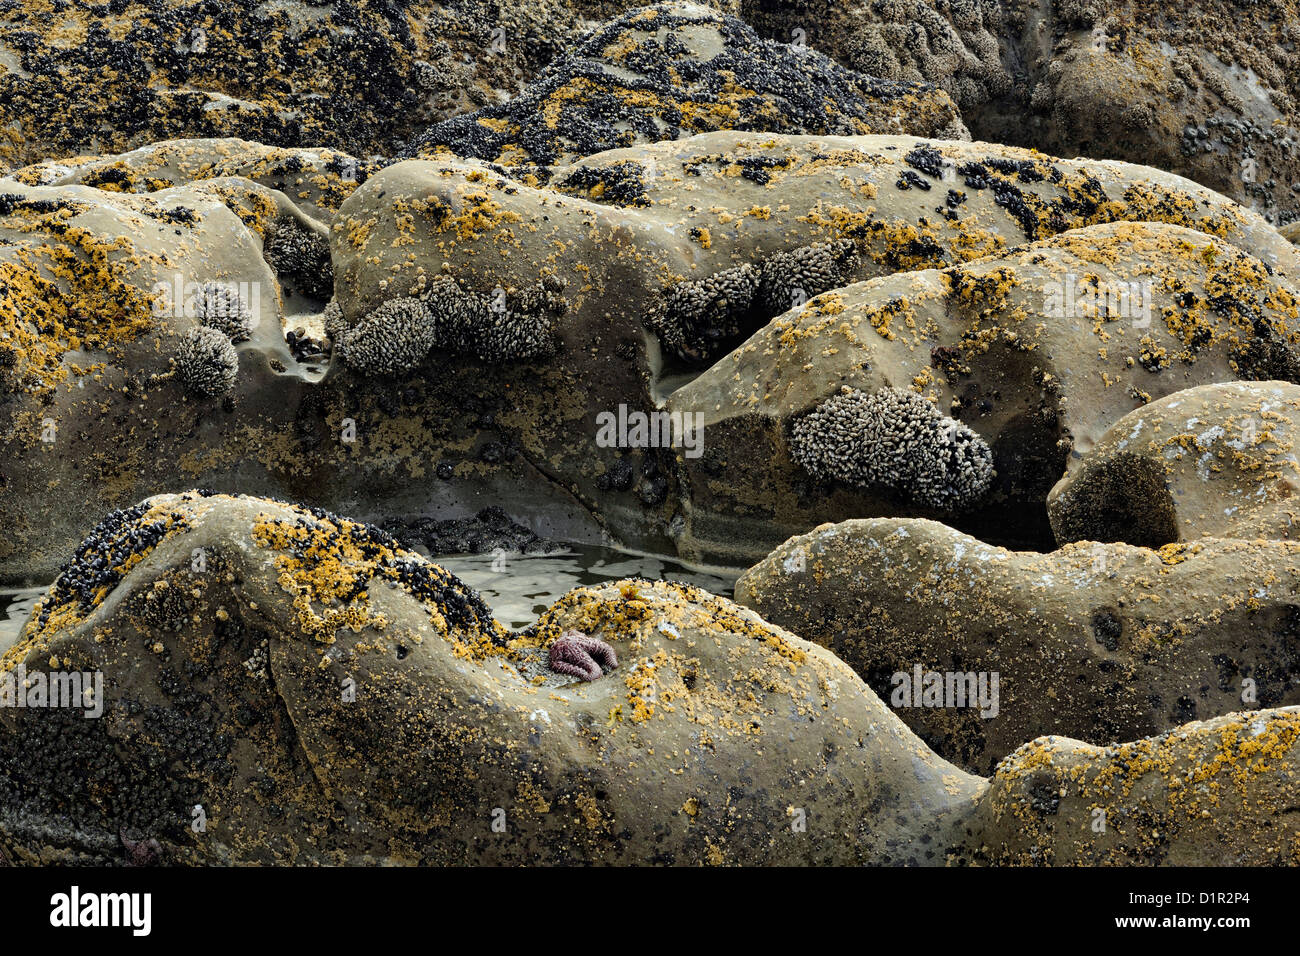 Barnacle colonies on Beach #4 rocks at low tide, Olympic National Park, Washington, USA - Stock Image